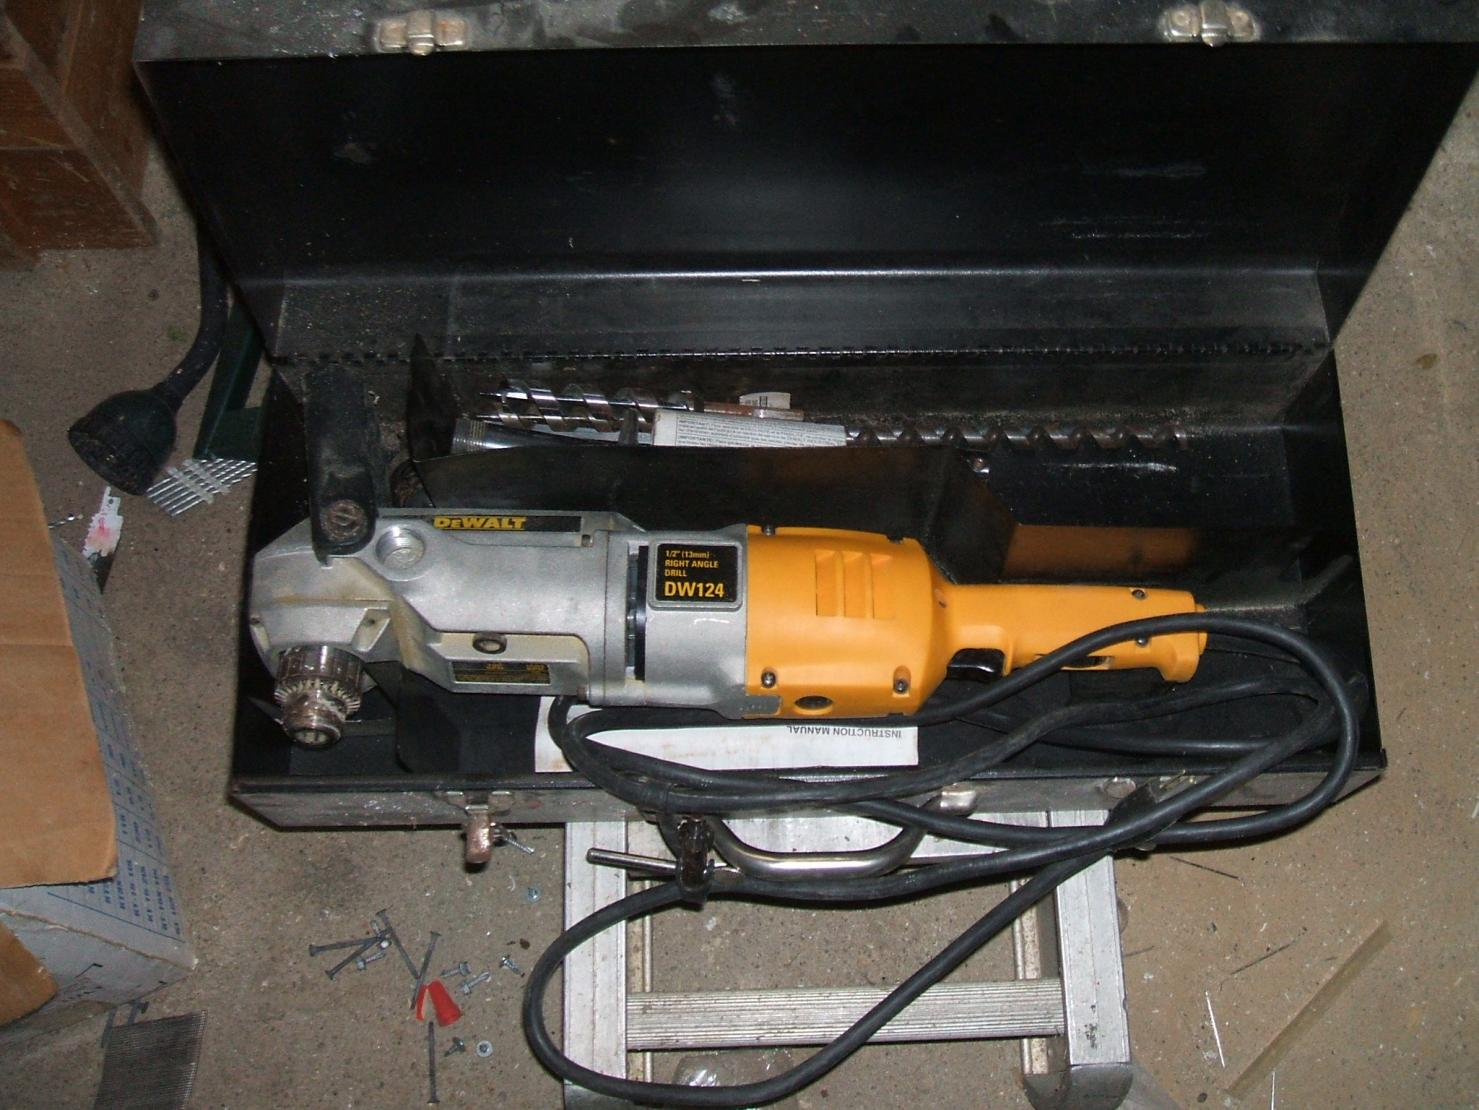 Hole Saw And Right Angle Drill Issues - Plumbing - Contractor Talk